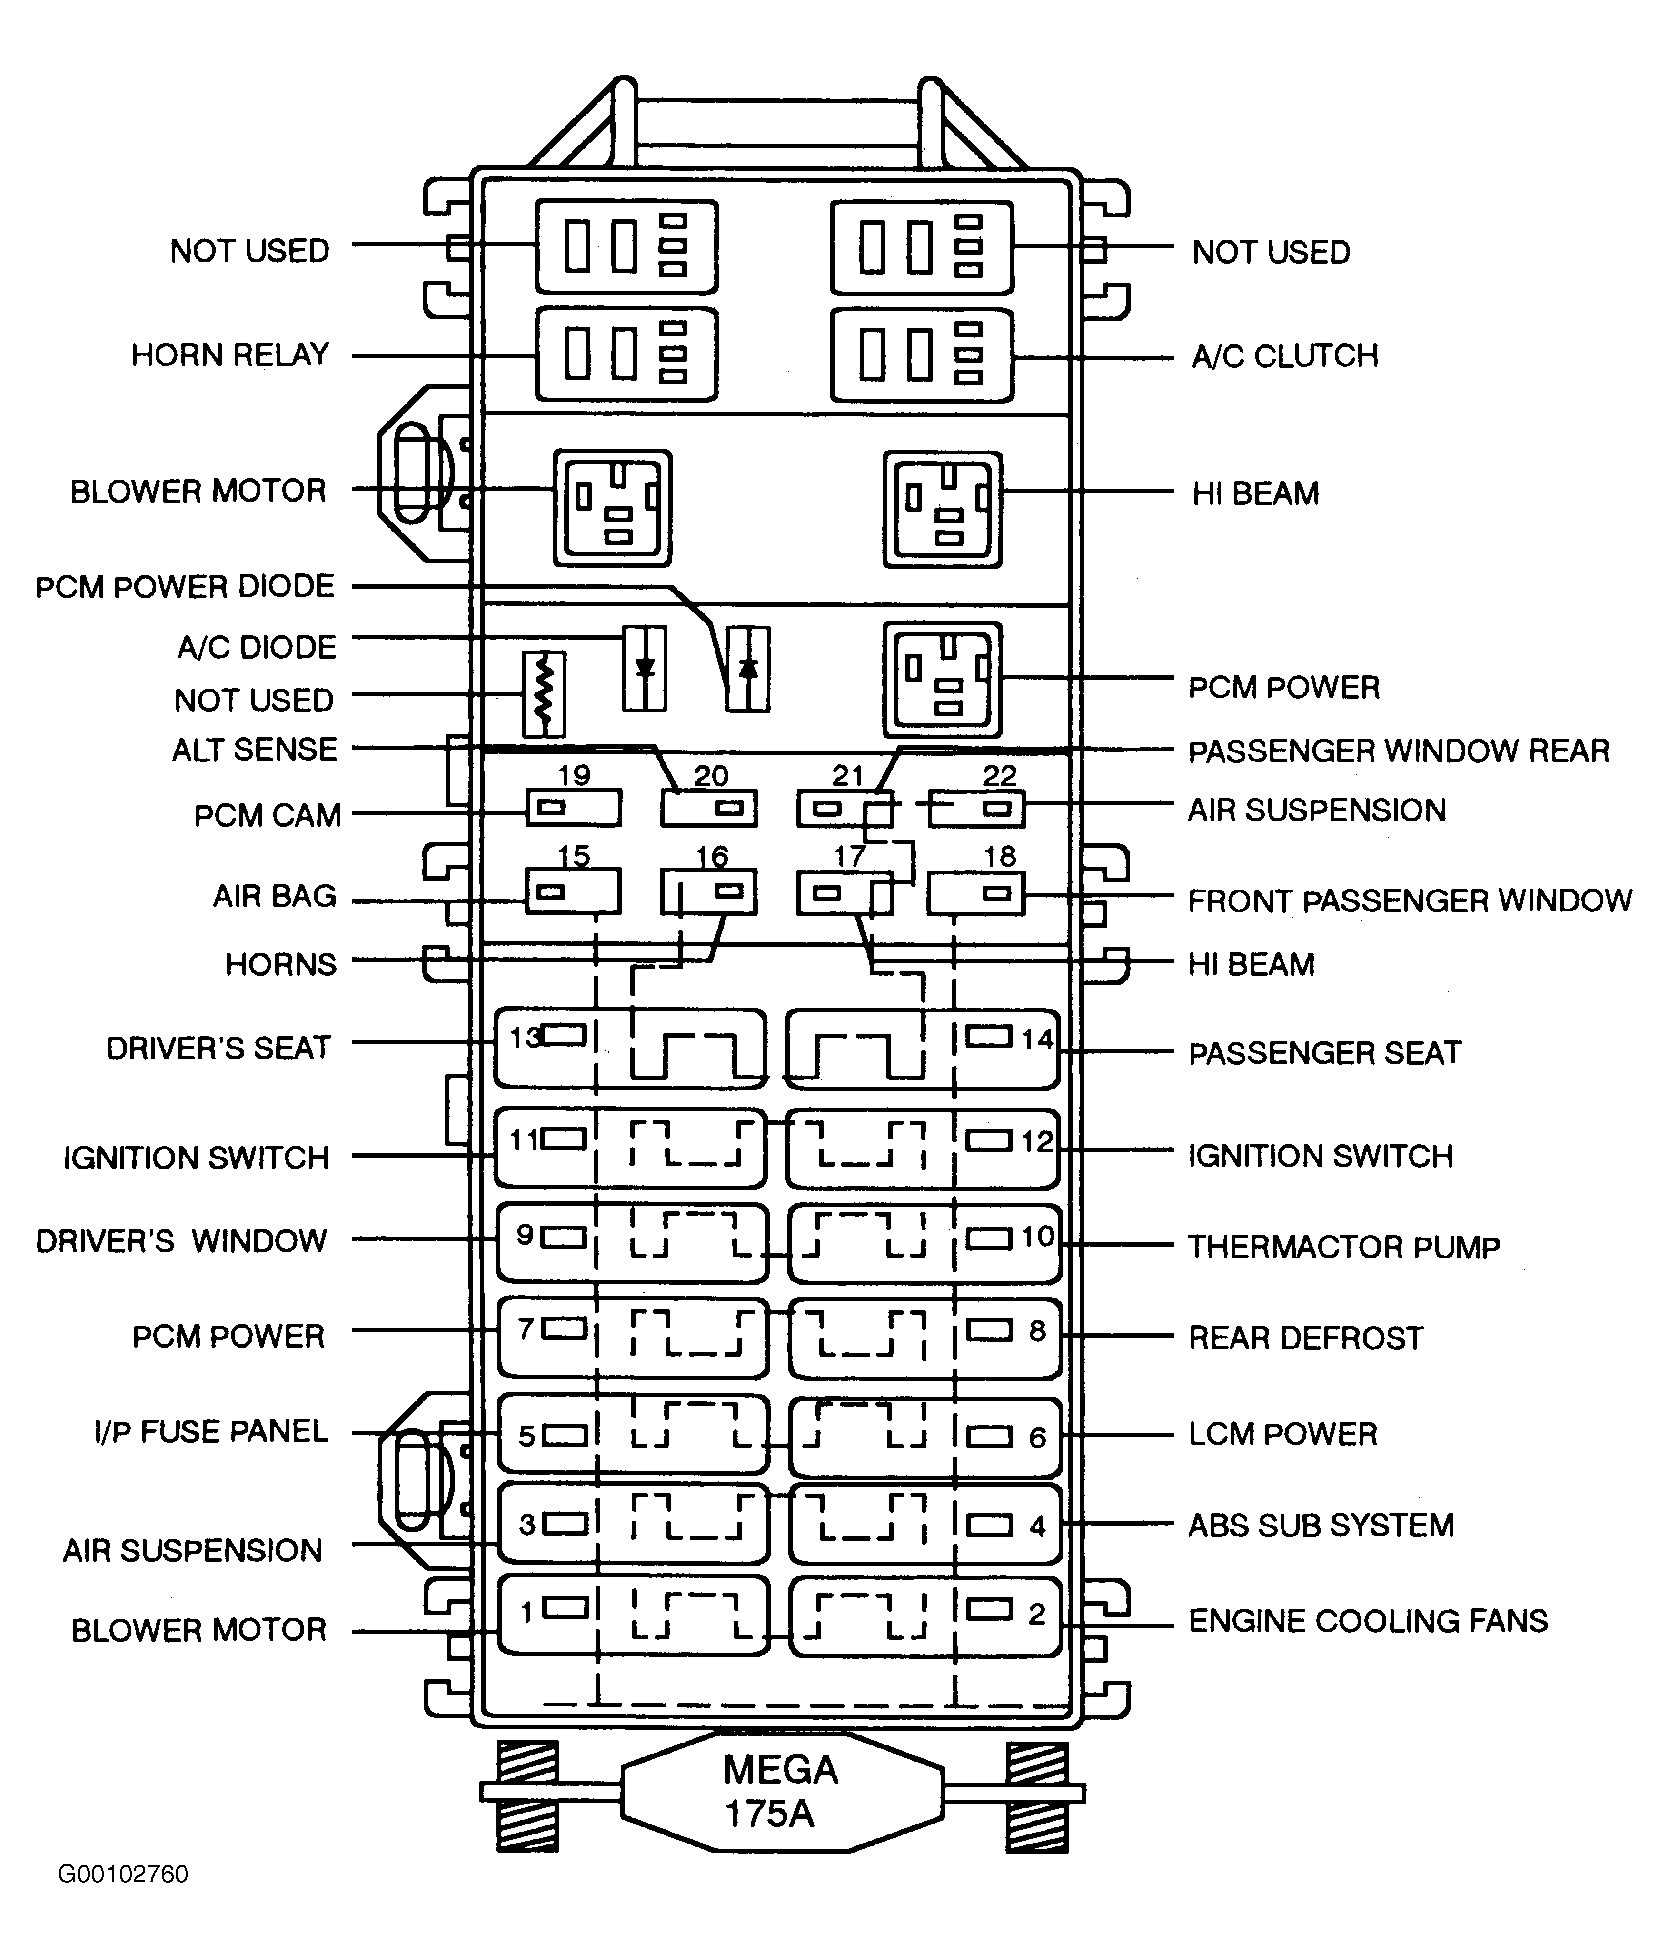 hight resolution of lincoln fuse box diagram wiring diagram expert 1996 lincoln town car fuse panel diagram wiring wiring